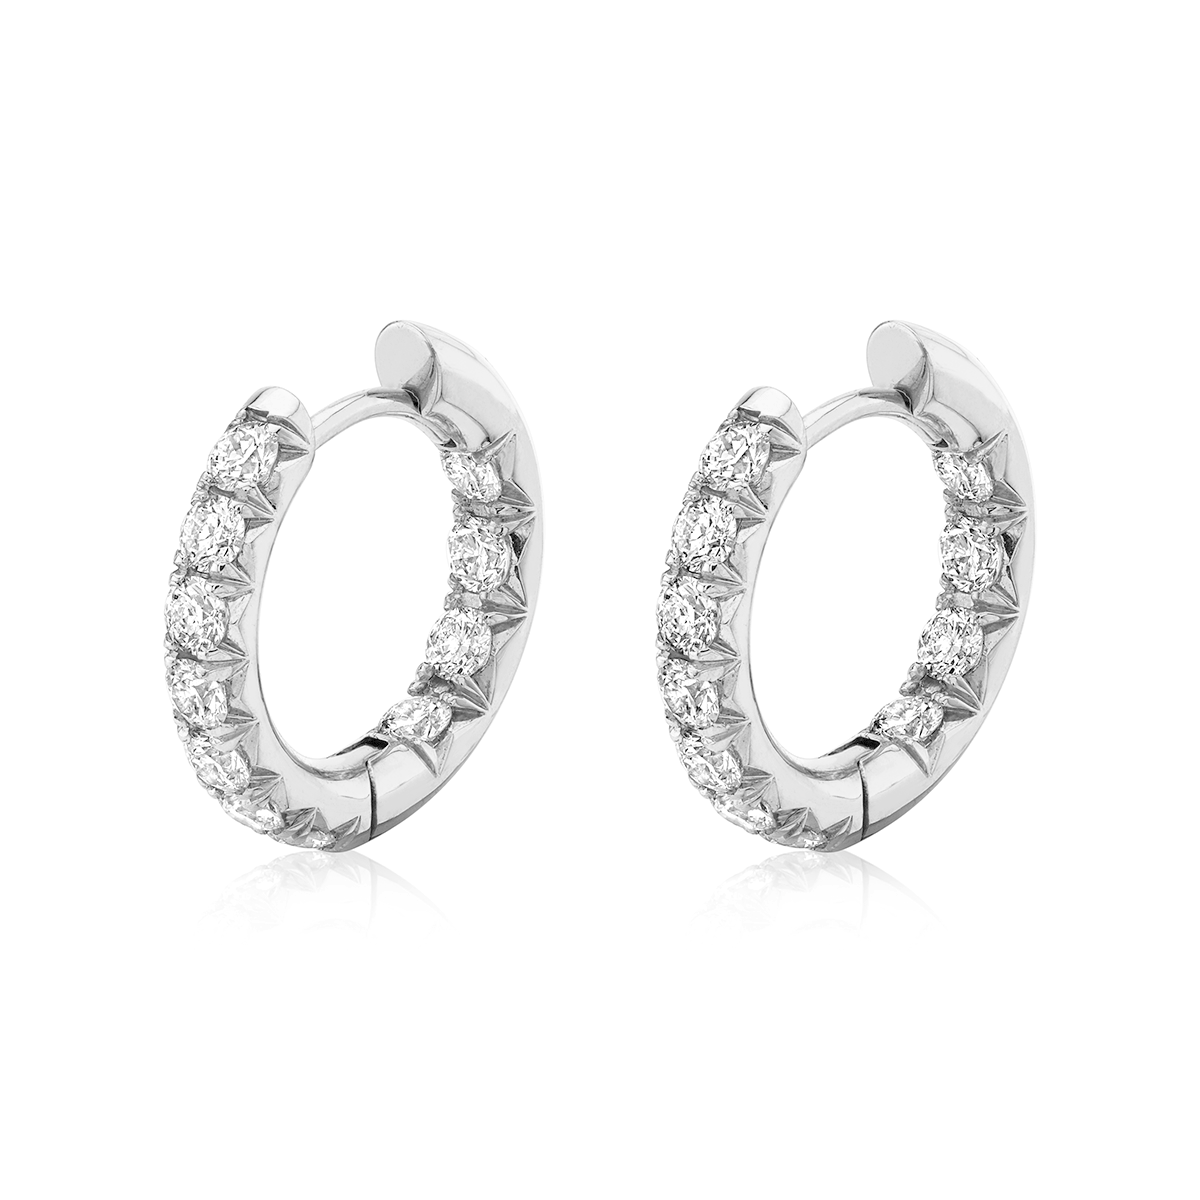 NEW! Inside Out French Pavé Diamond Hoops